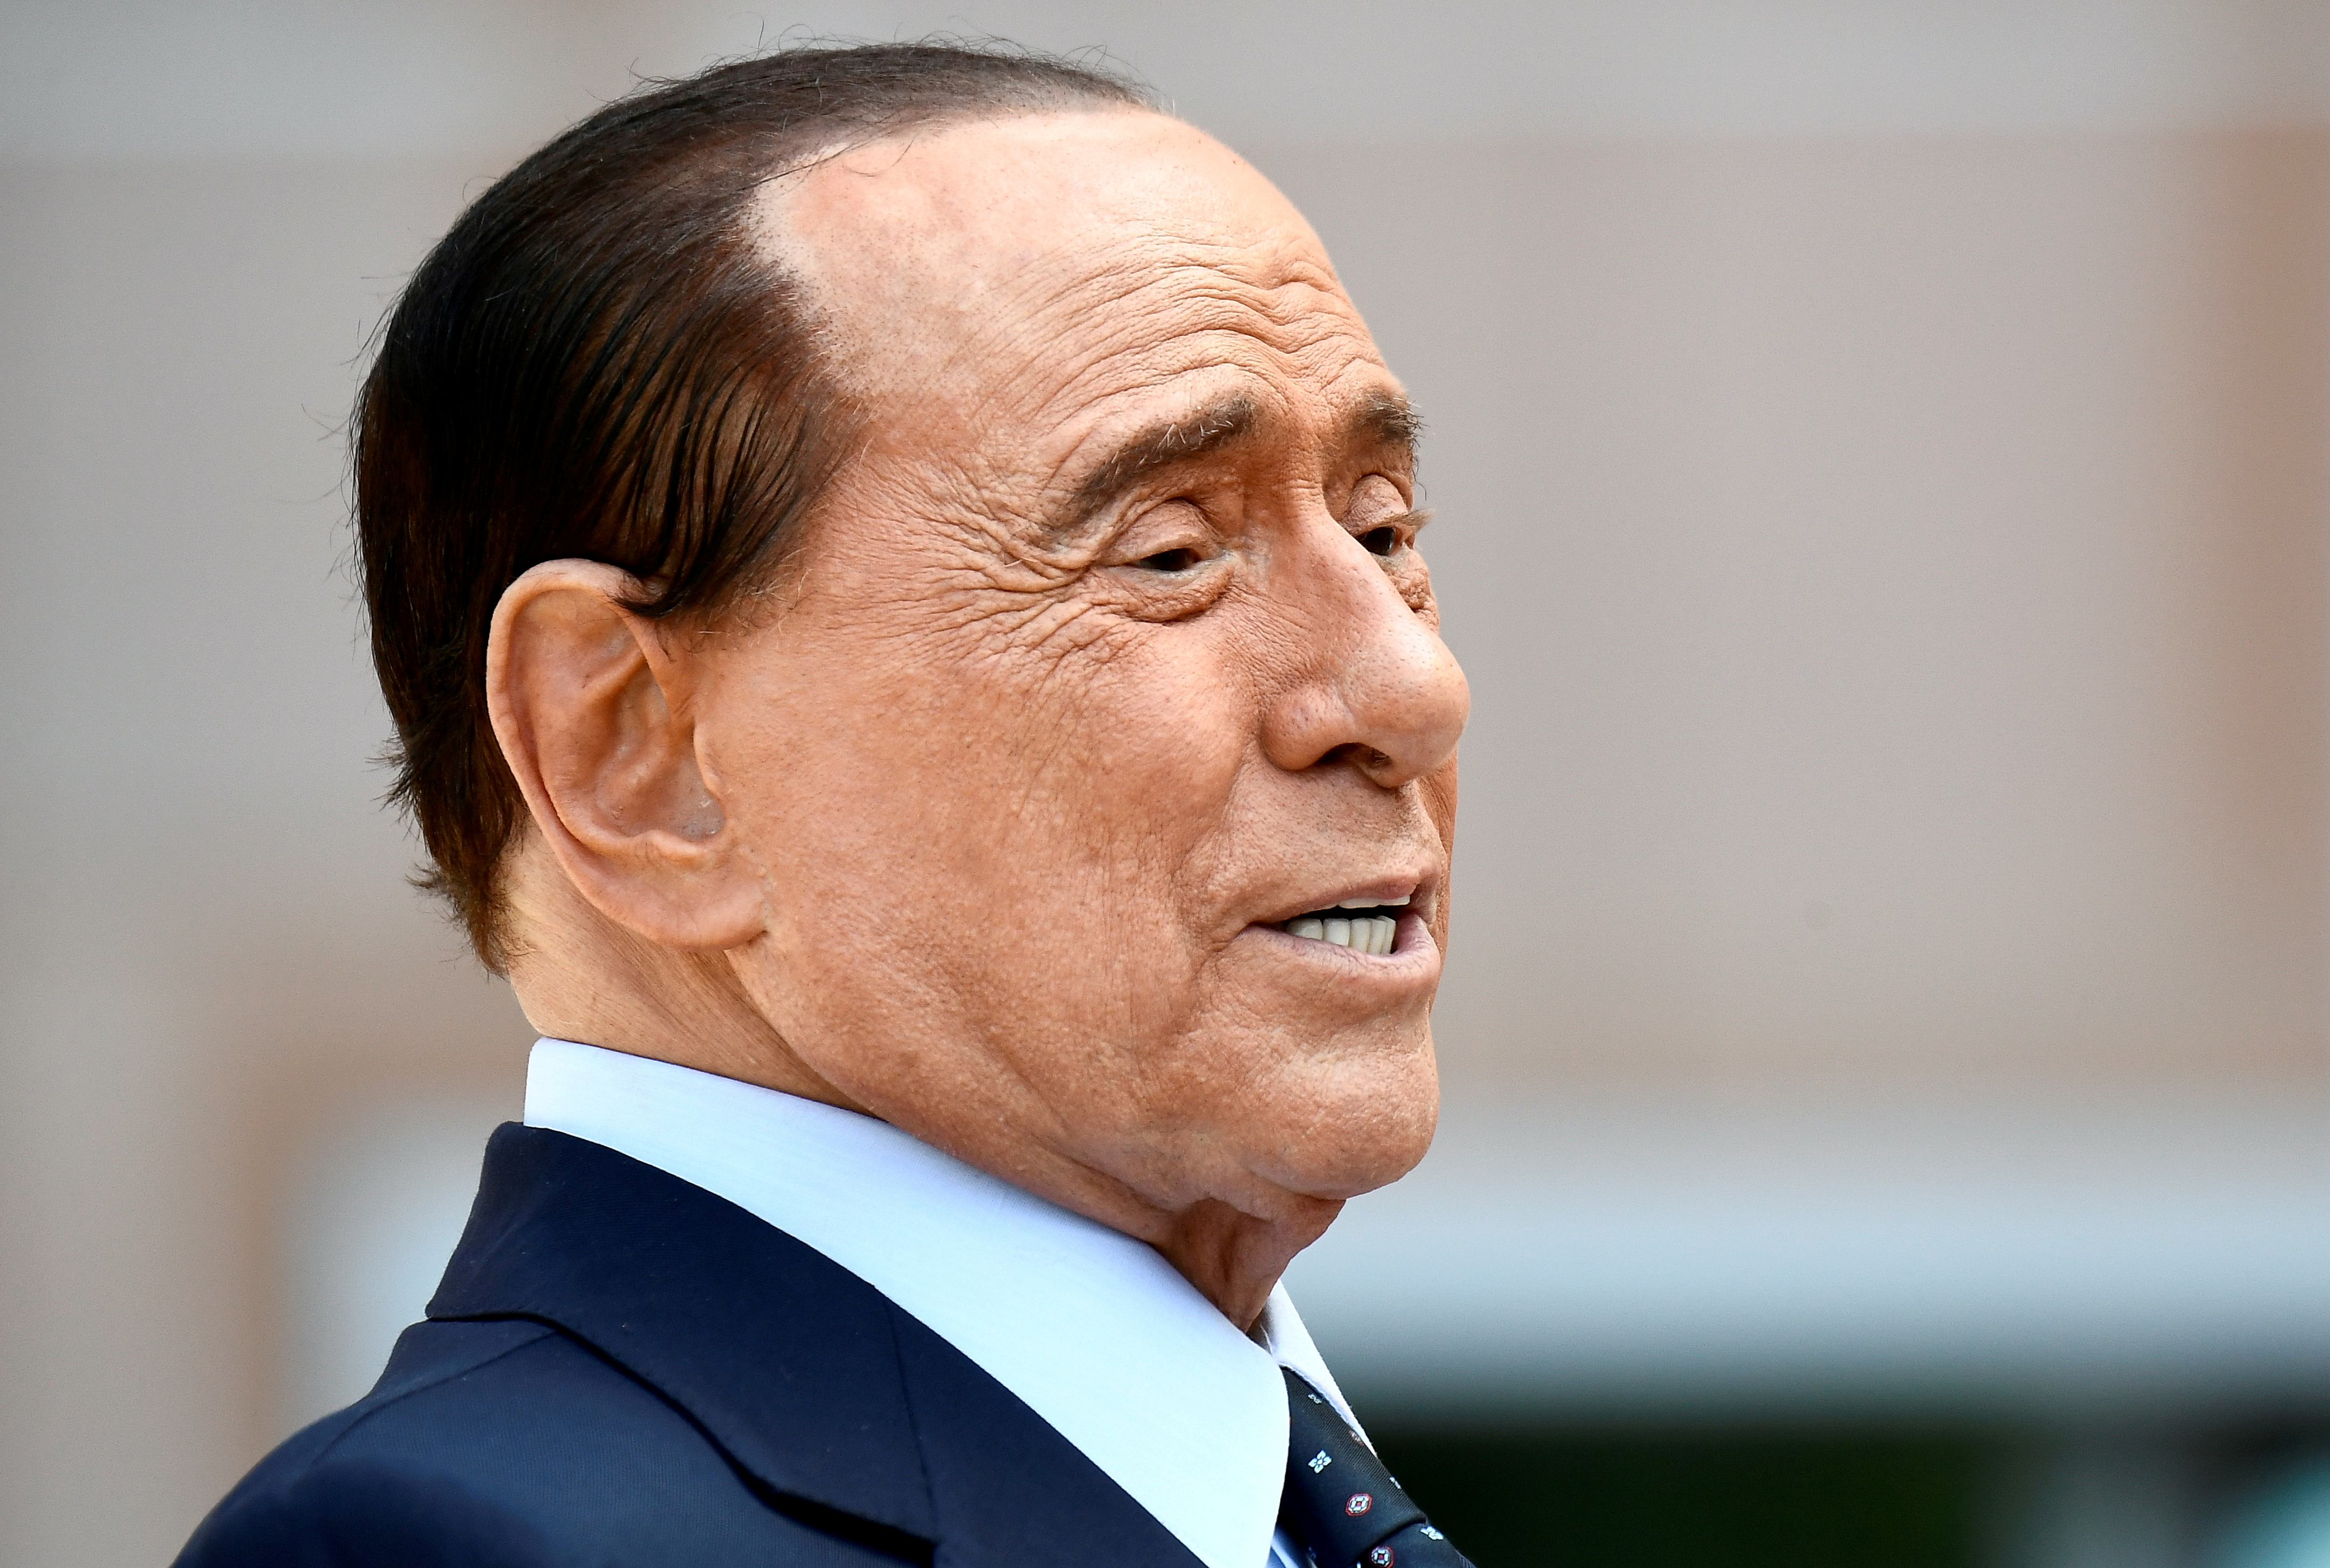 Italy former PM Berlusconi discharged after brief hospital stay